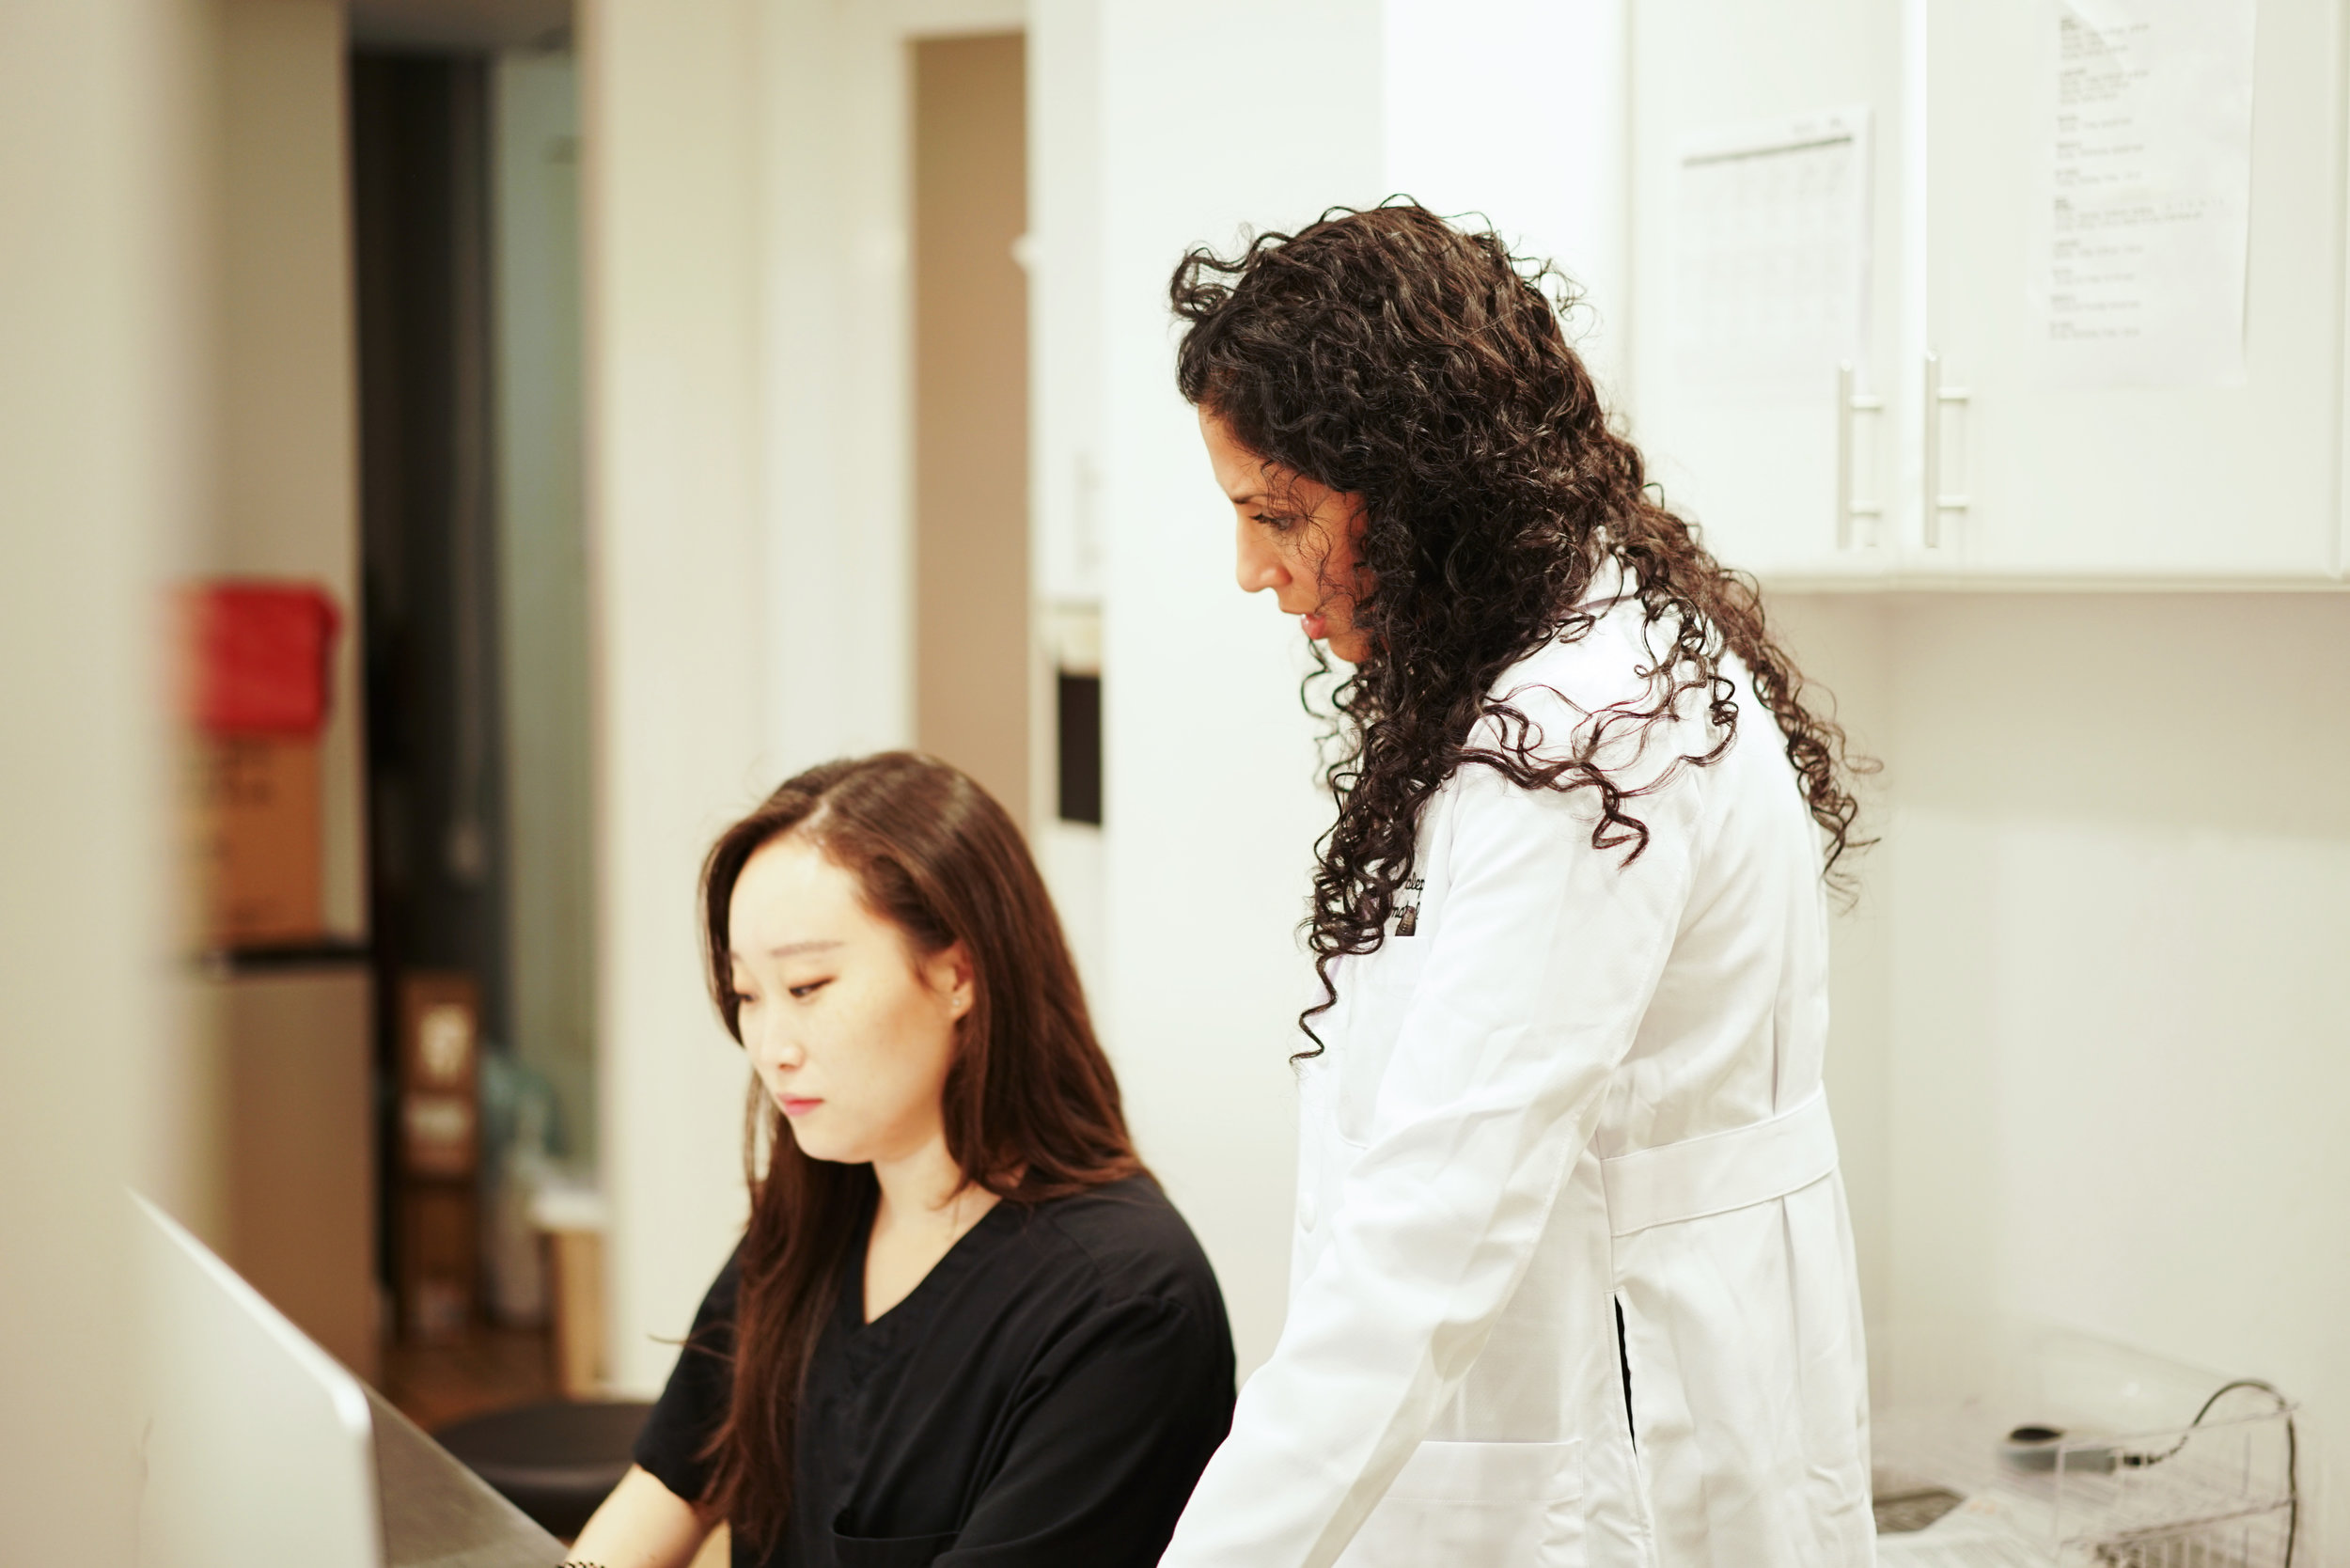 Image of a doctor in an office standing up next to an assistant who's sitting down next to her